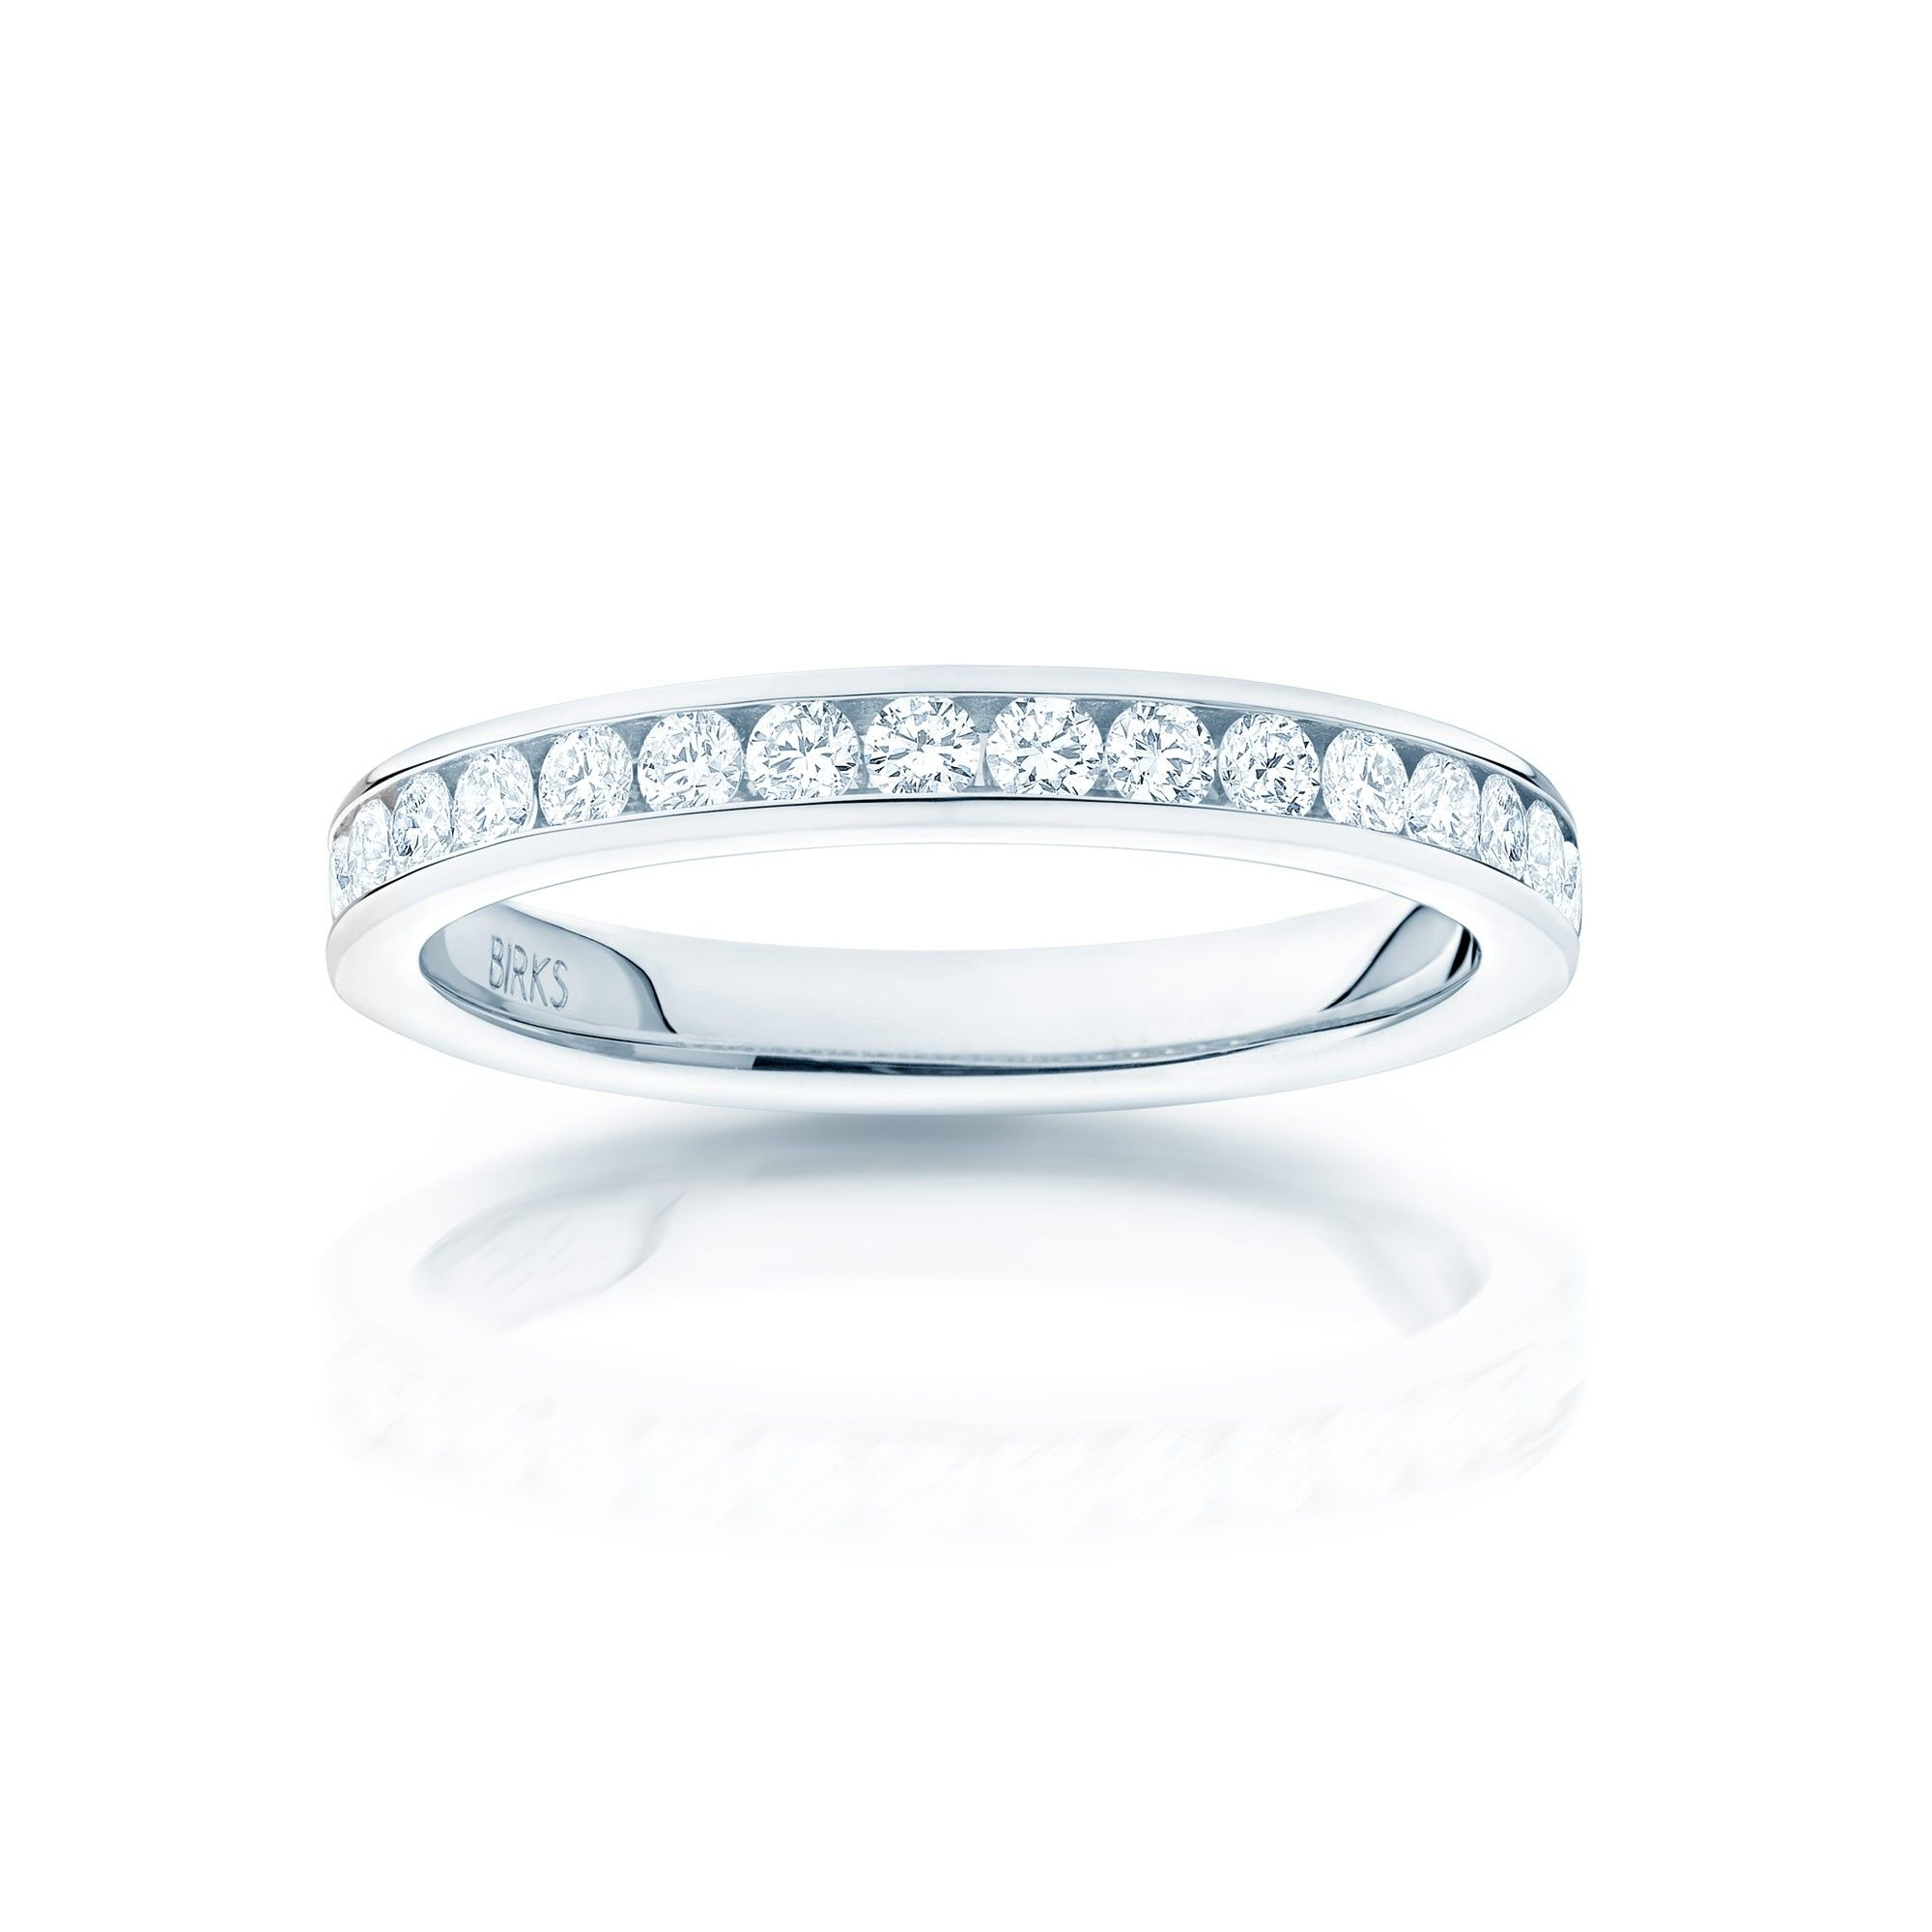 Birks Collections Diamond Wedding Band for Her Jewellery